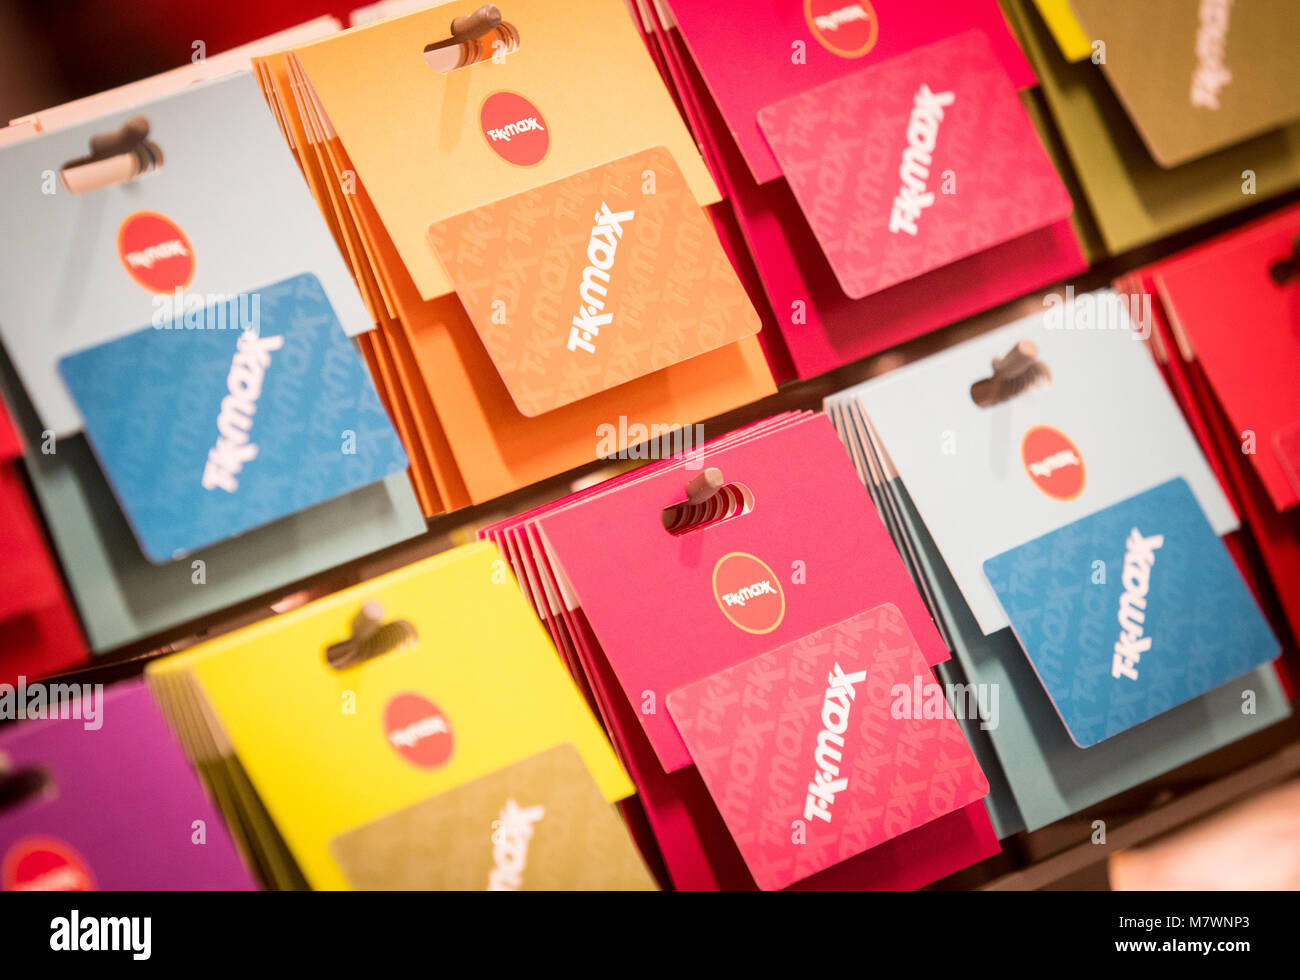 TK Maxx gift cards on display in a TK Maxx store - Stock Image